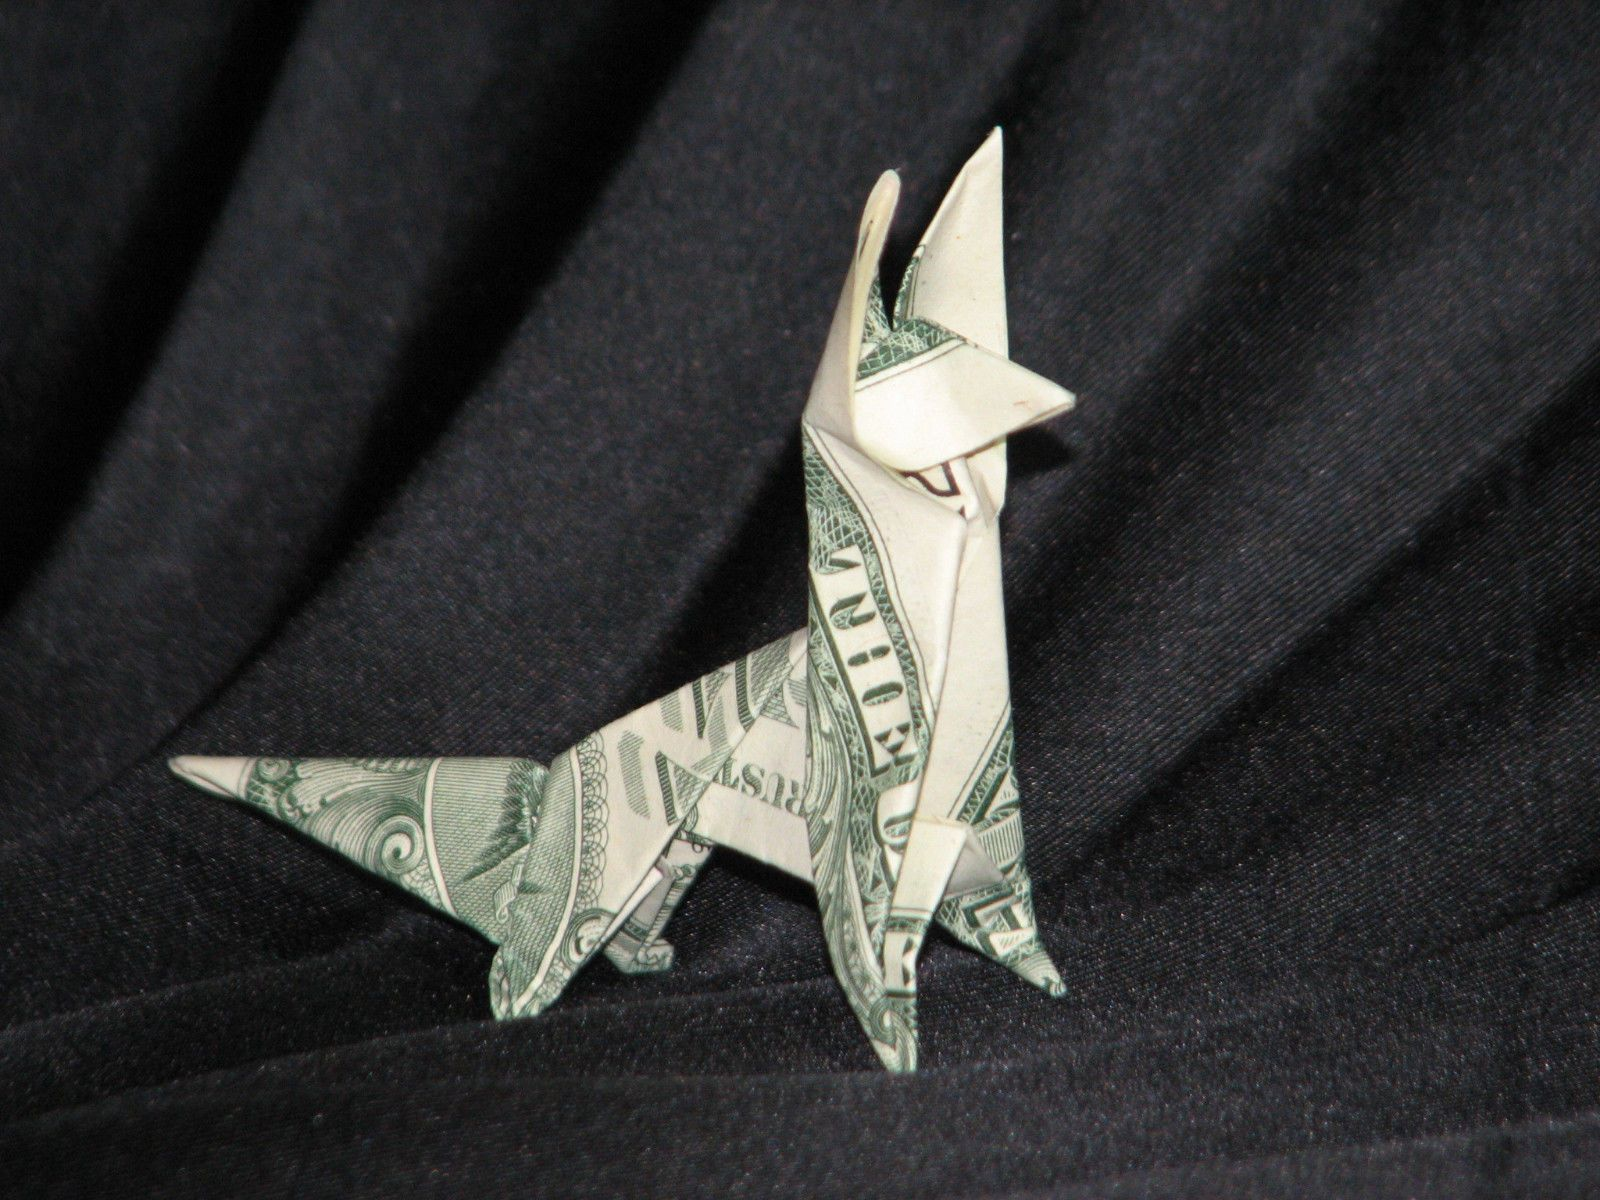 Money origami animals many designs made of real dollar bills v fox money origami jeuxipadfo Image collections